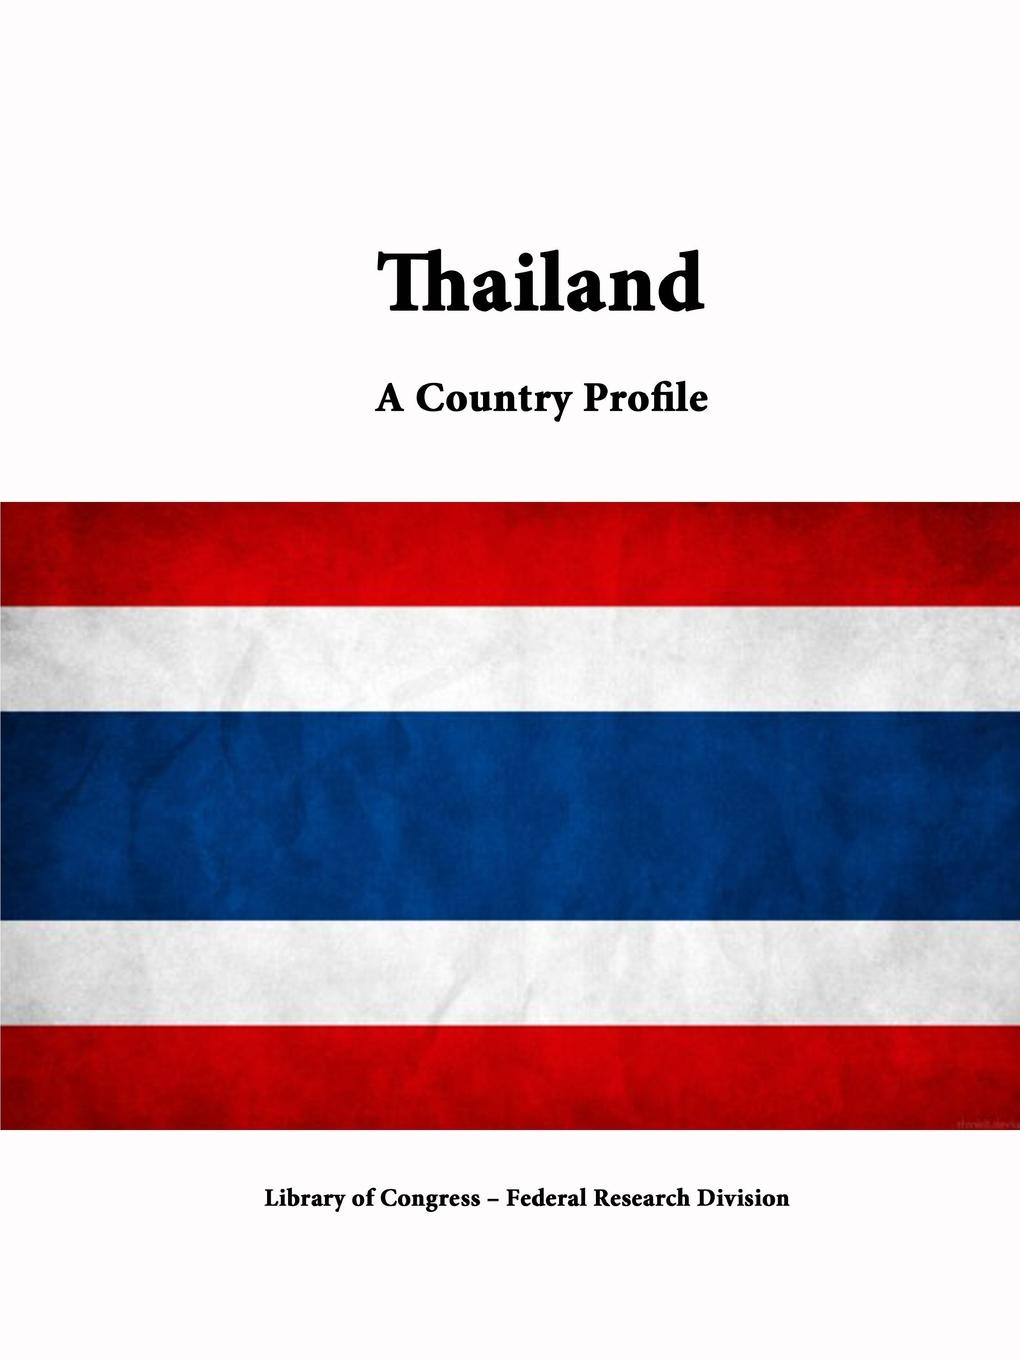 Library of Congress, Federal Research Division Thailand. A Country Profile library of congress federal research division north korea a country profile